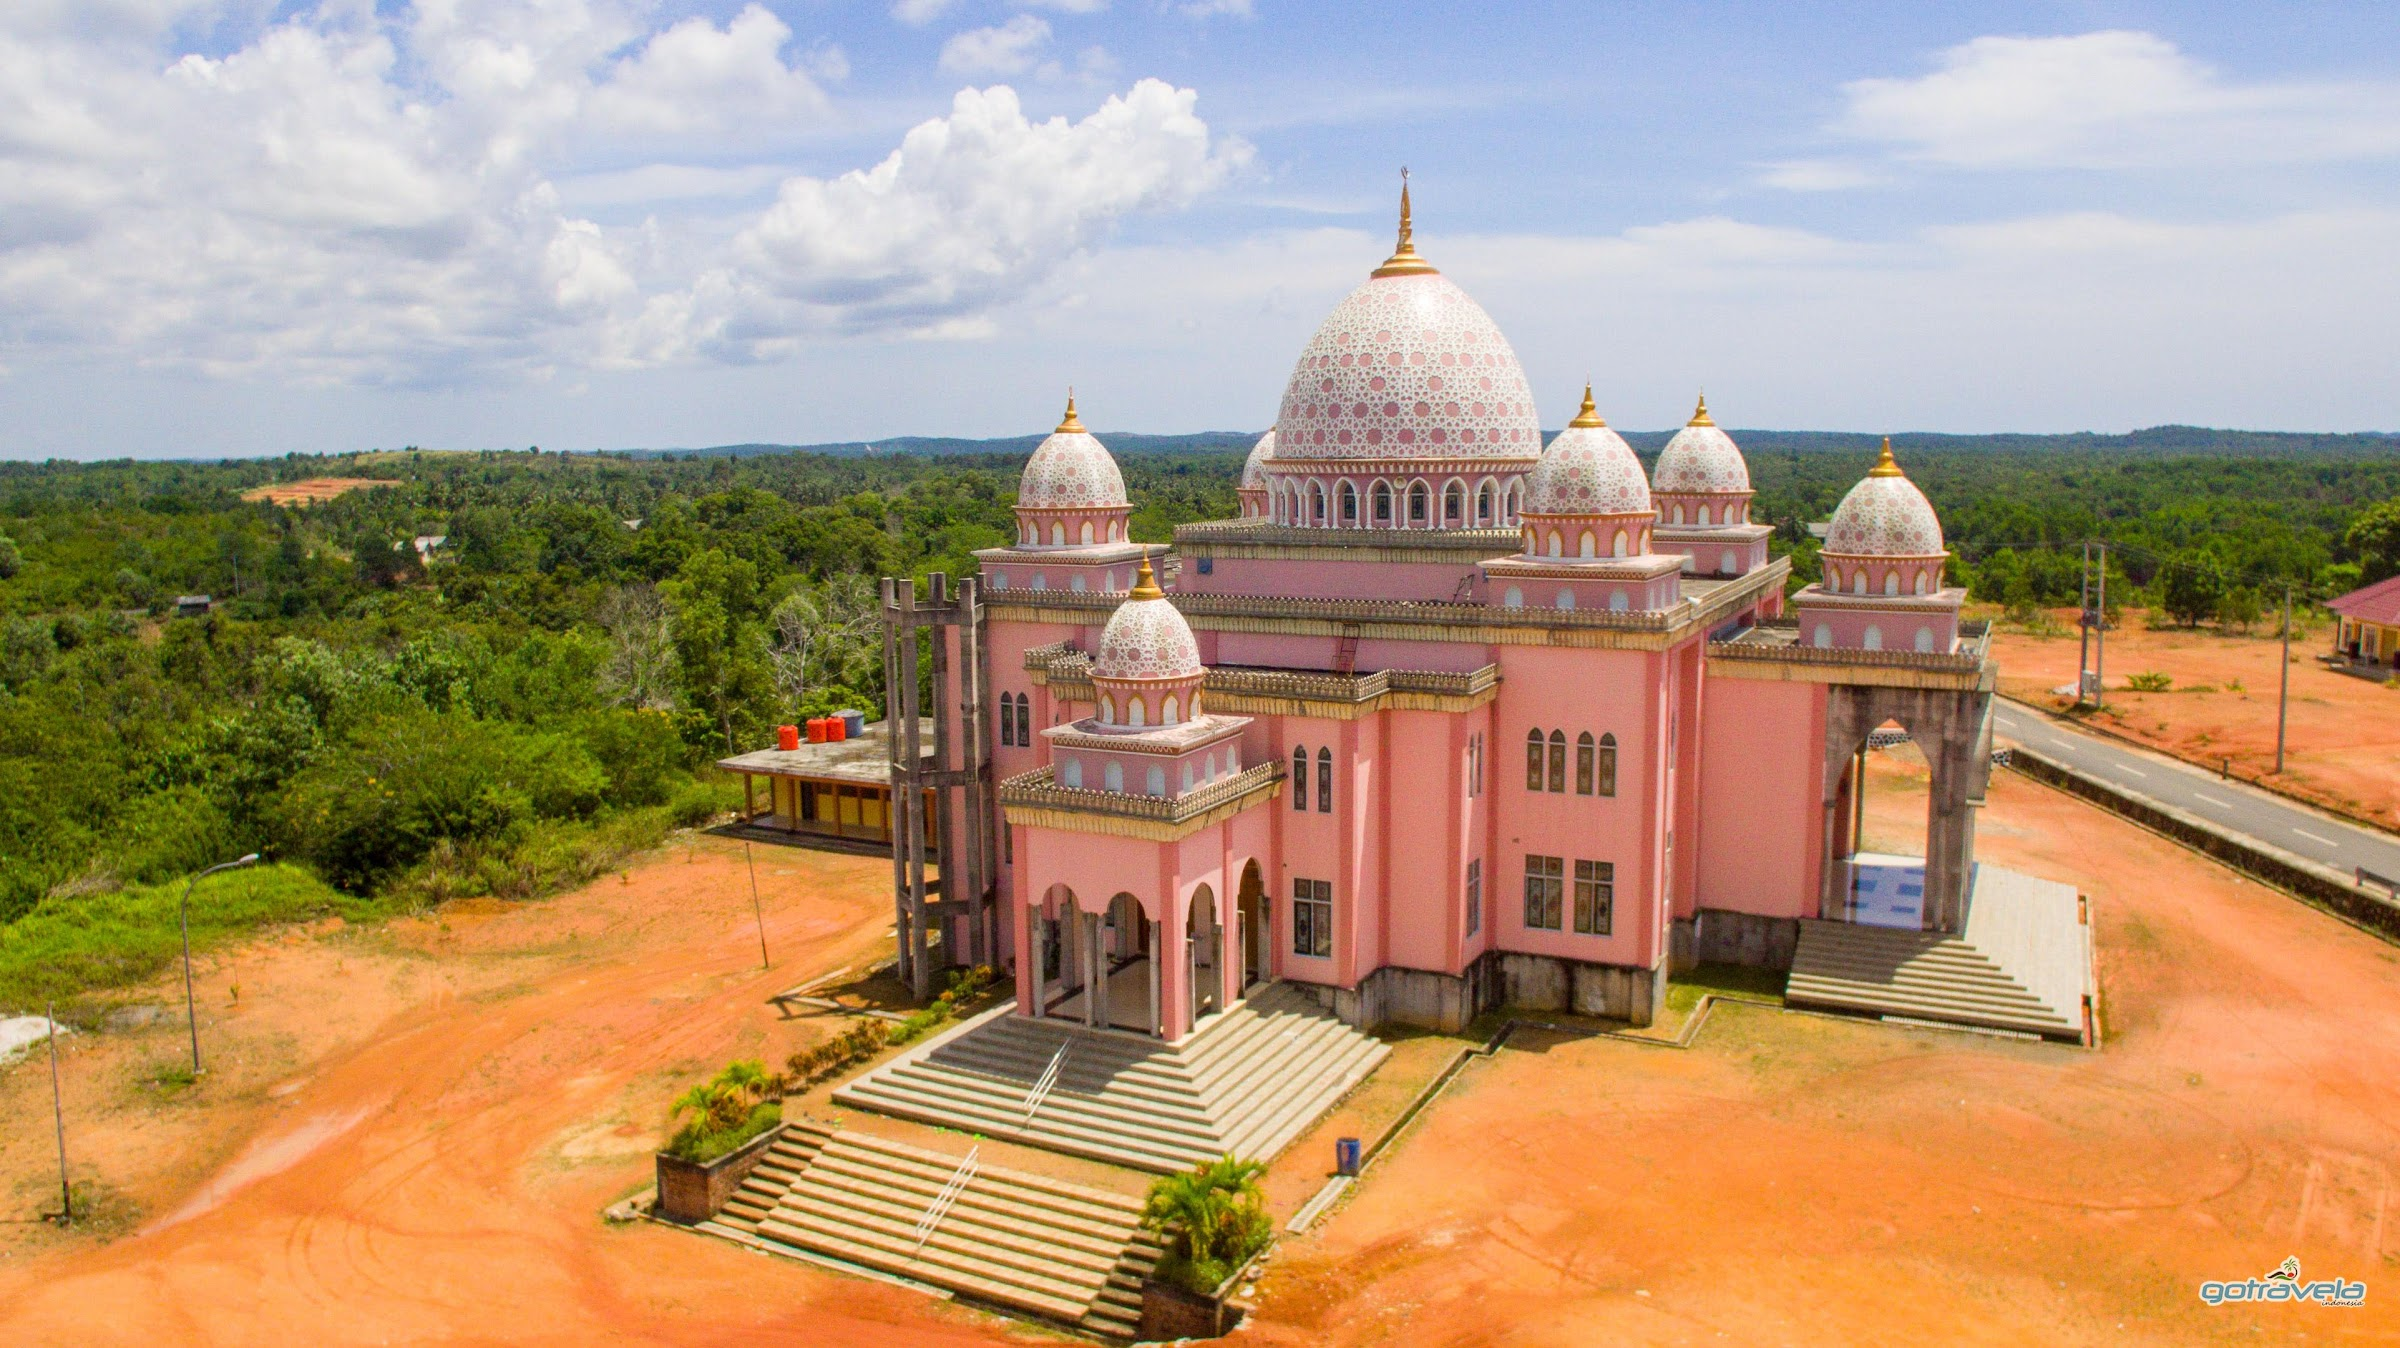 Pink Mosque Bintan Sri Bintan Pura Seaport